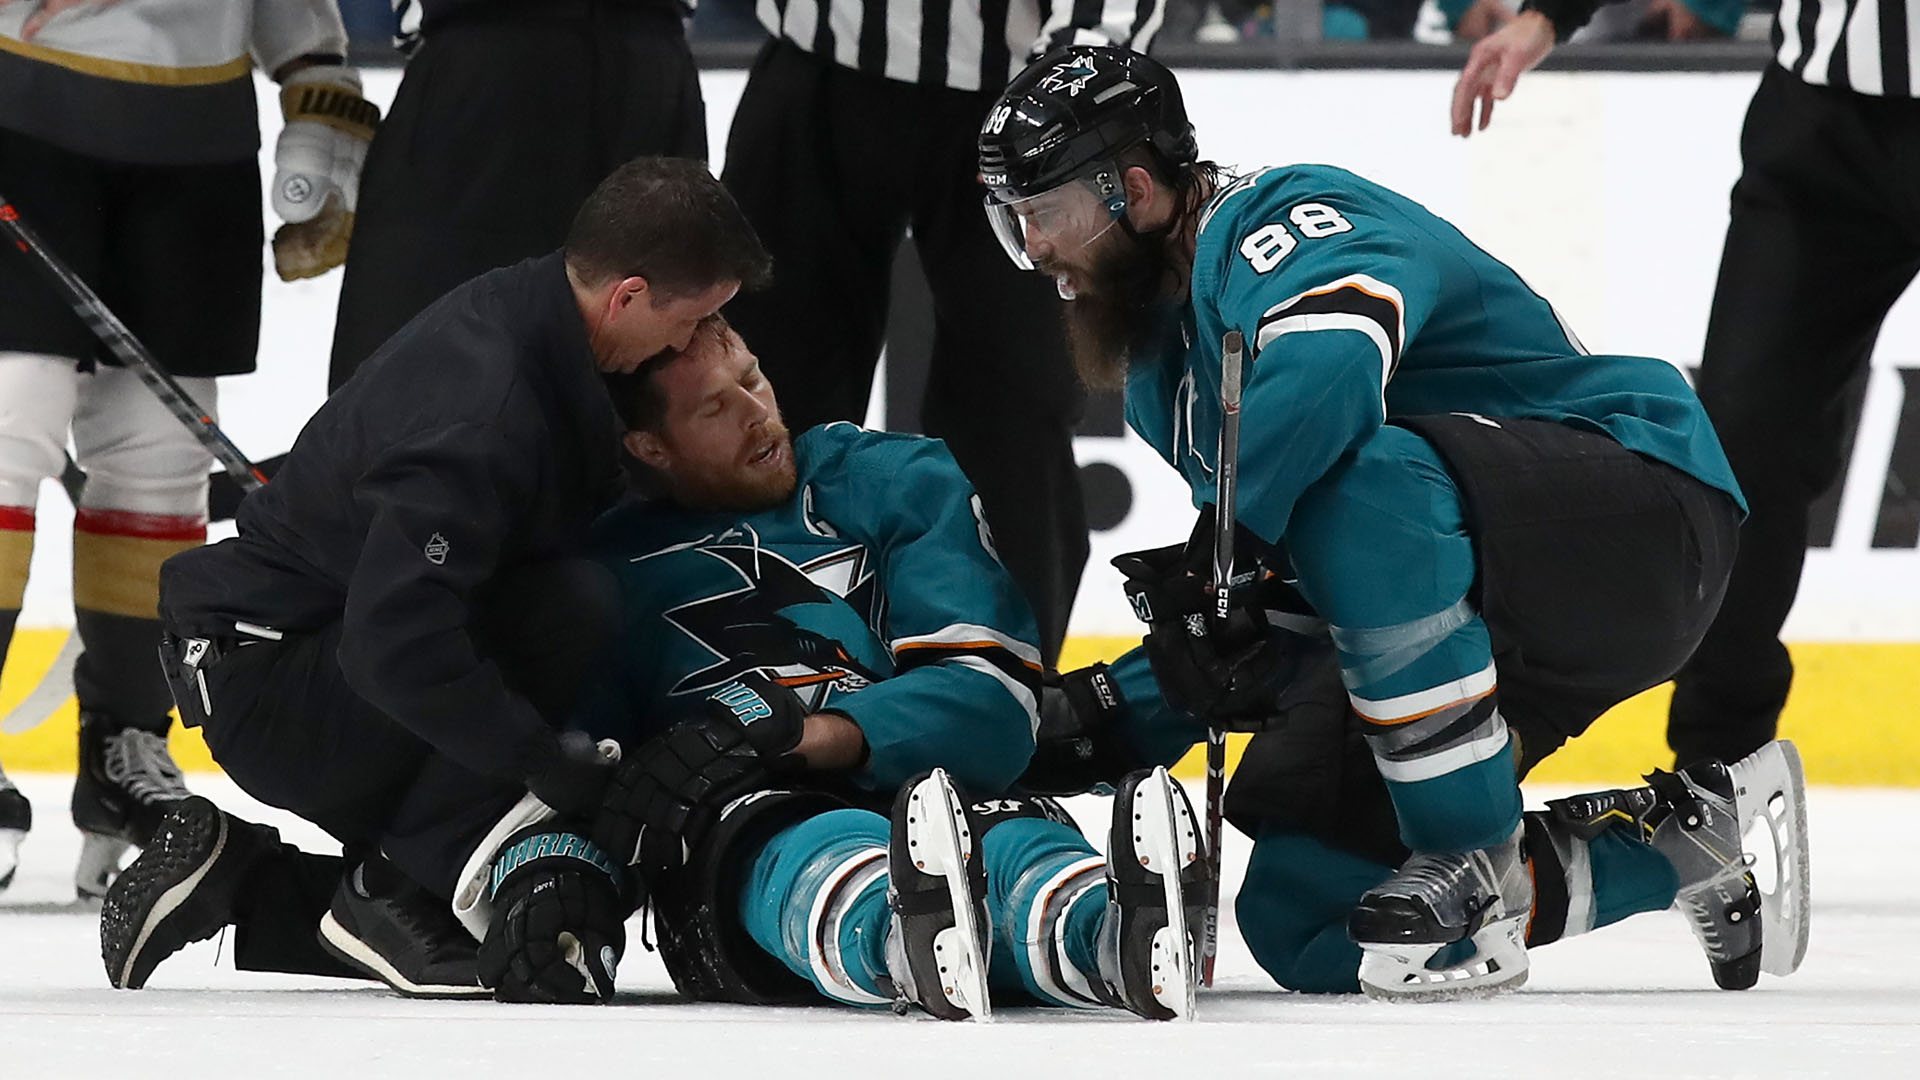 Joe Pavelski injury update: Sharks captain says play that injured him wasn't a penalty